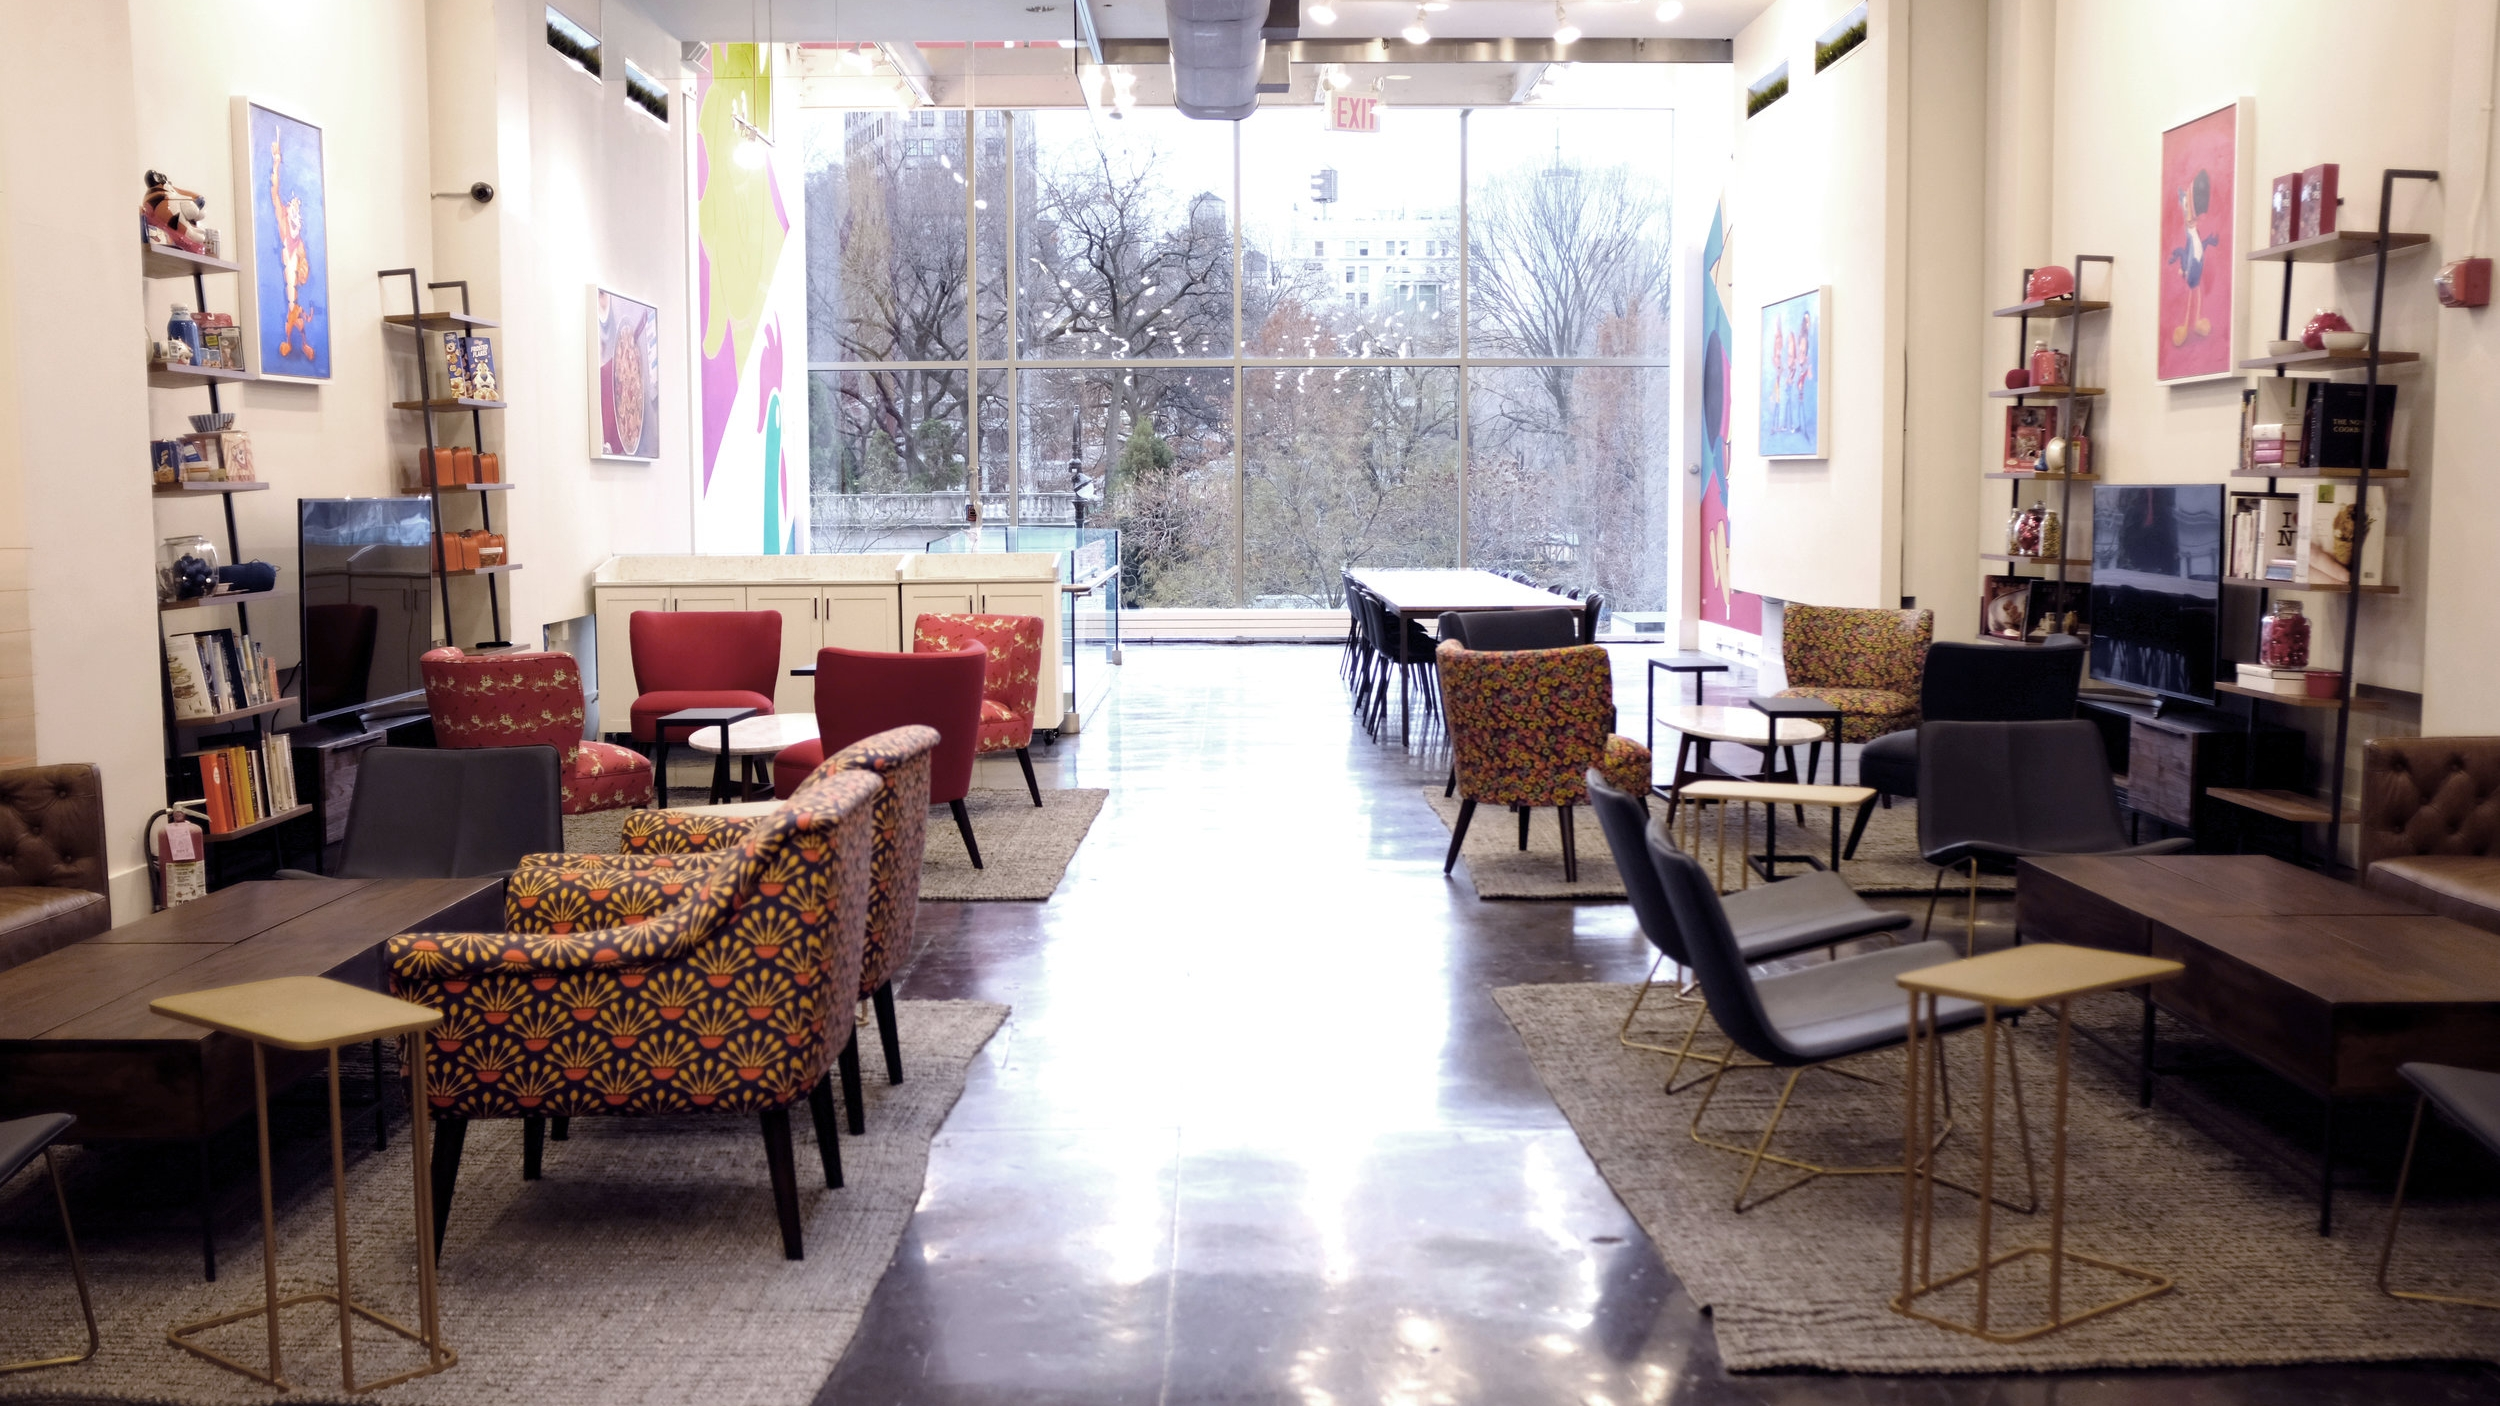 Kellogg's NYC has a 5,000-square foot loft overlooking Union Square Park available for breakfast meetings, birthdays, and cocktail parties. Image Source: Kellogg's NYC